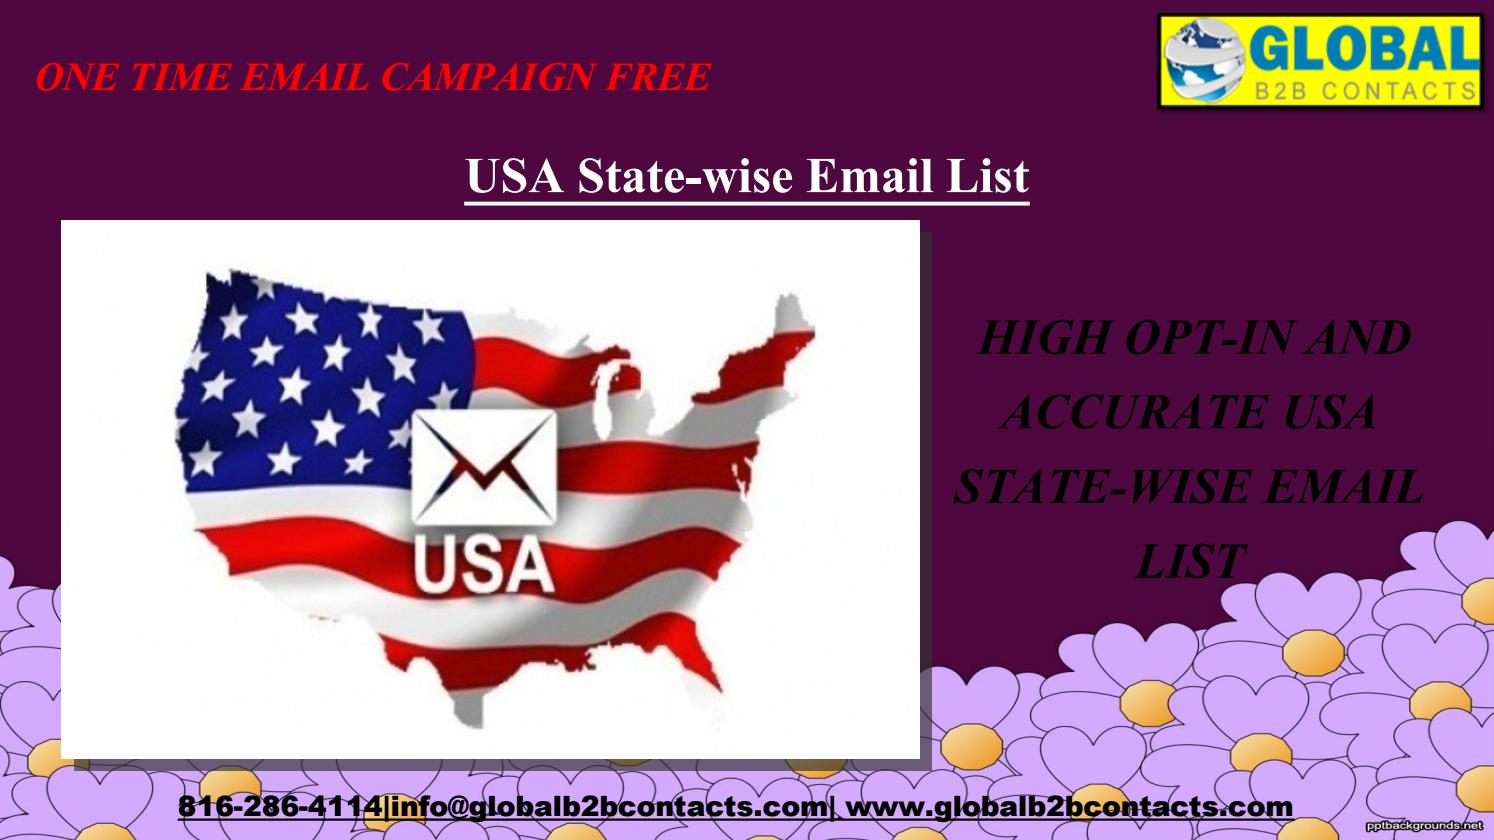 USA State-wise Email List by dylangloria99 - issuu